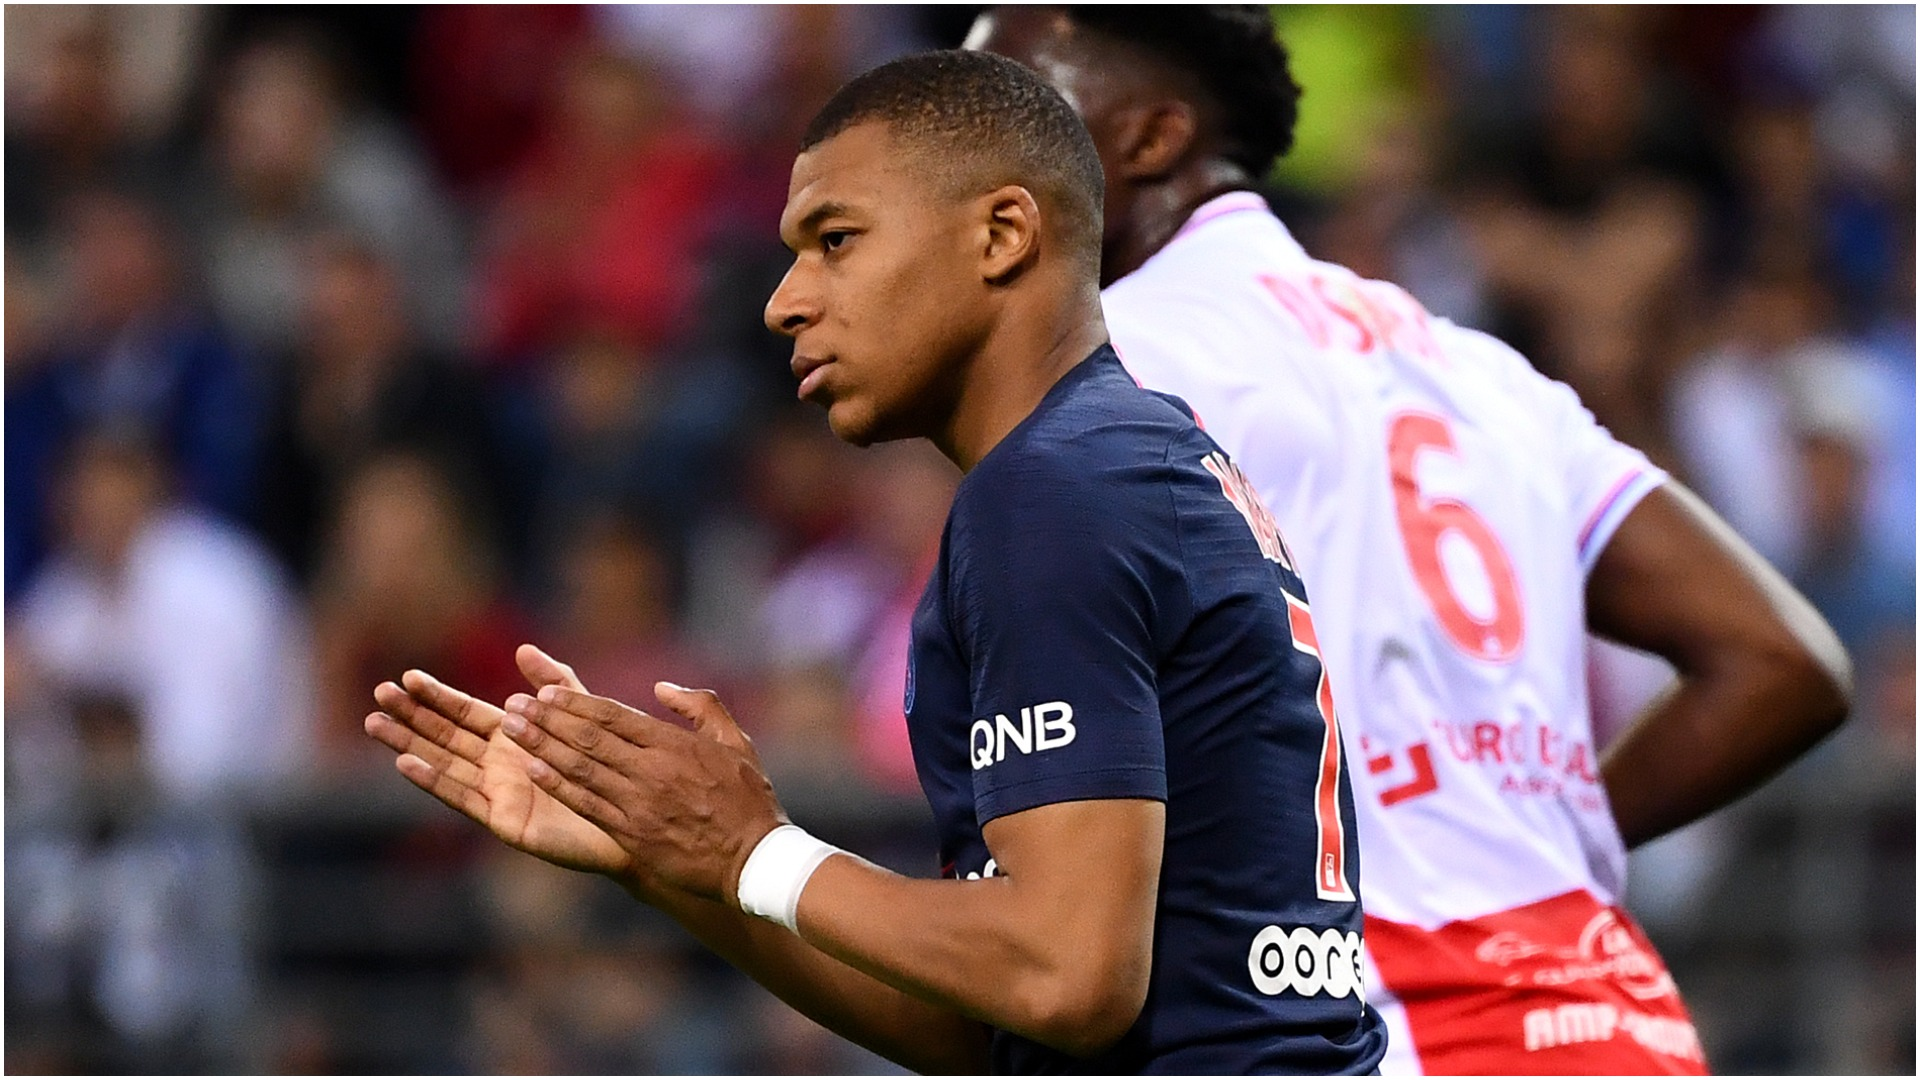 PSG lose to Reims, Monaco stay up in Ligue 1